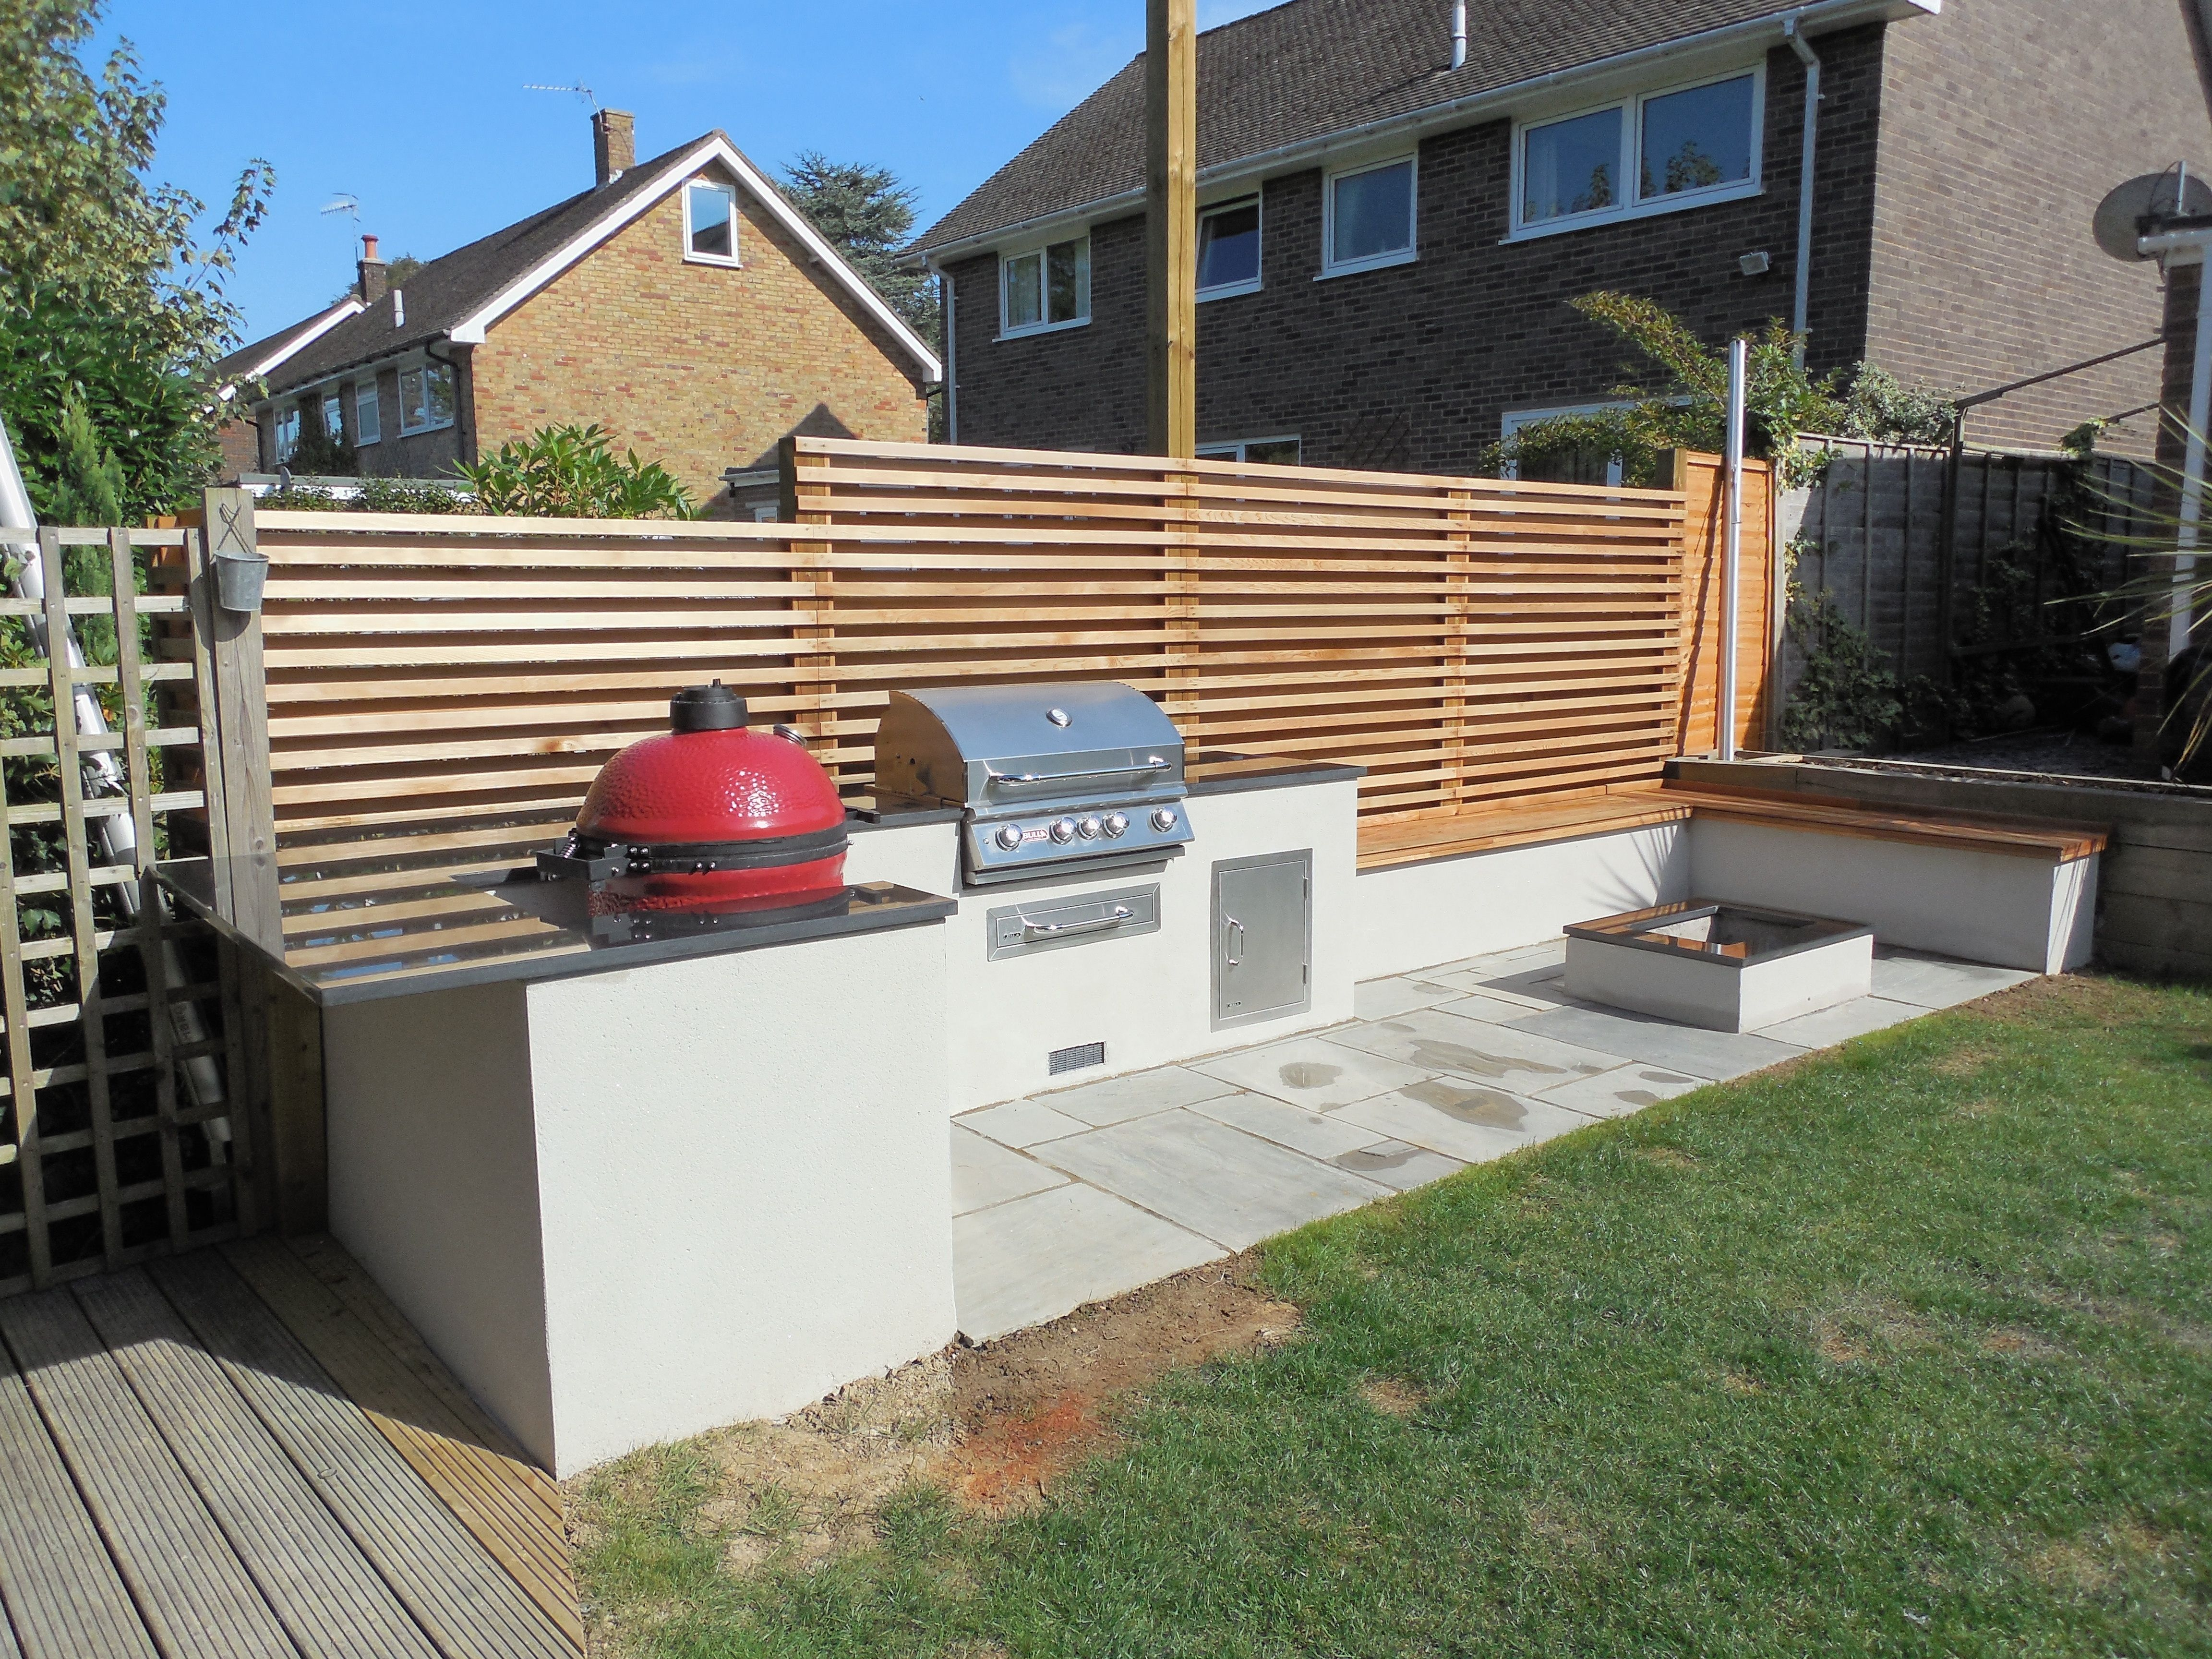 design outdoors outdoor kitchens and bbq areas sunken fire pit